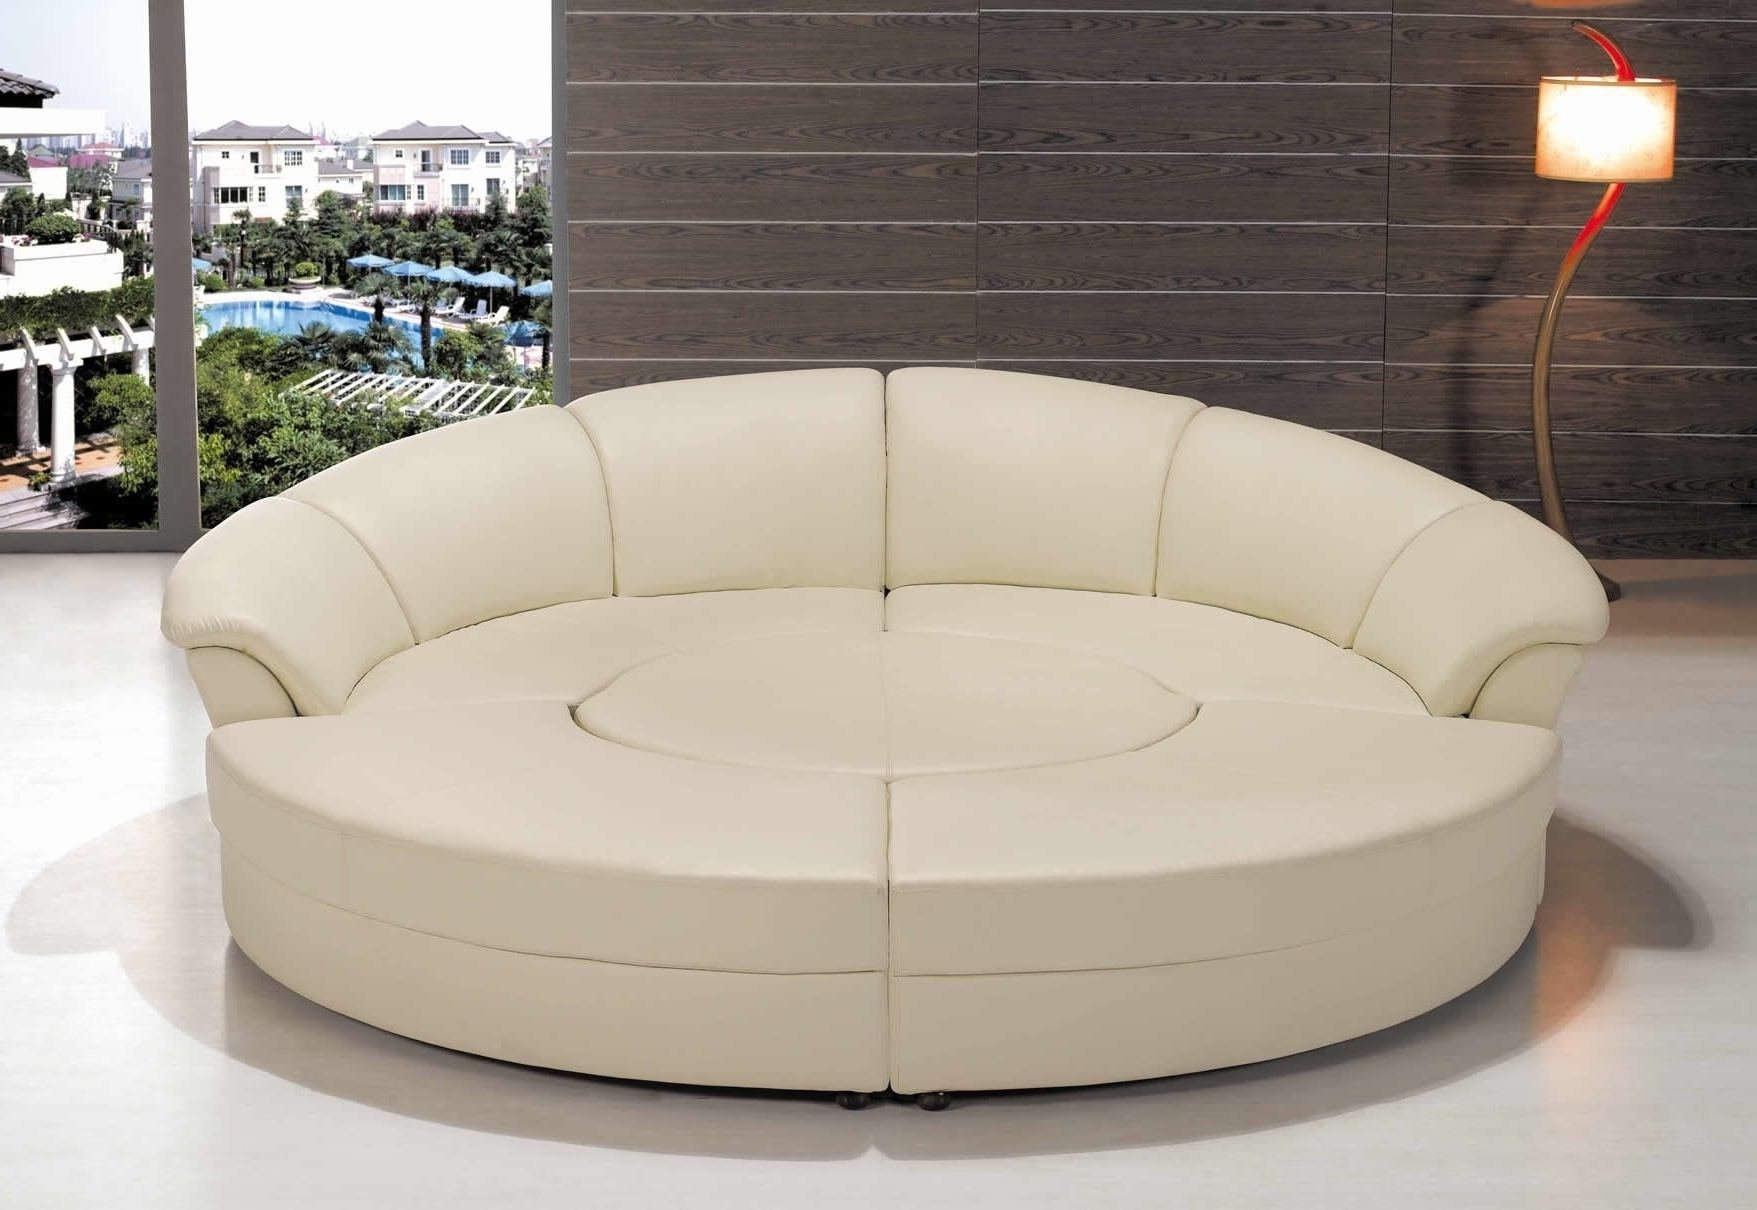 Semi Circular Sectional Sofa 2 – Semi Circular Sofa Uk, Sofa Throughout Well Known Round Sofas (View 3 of 15)